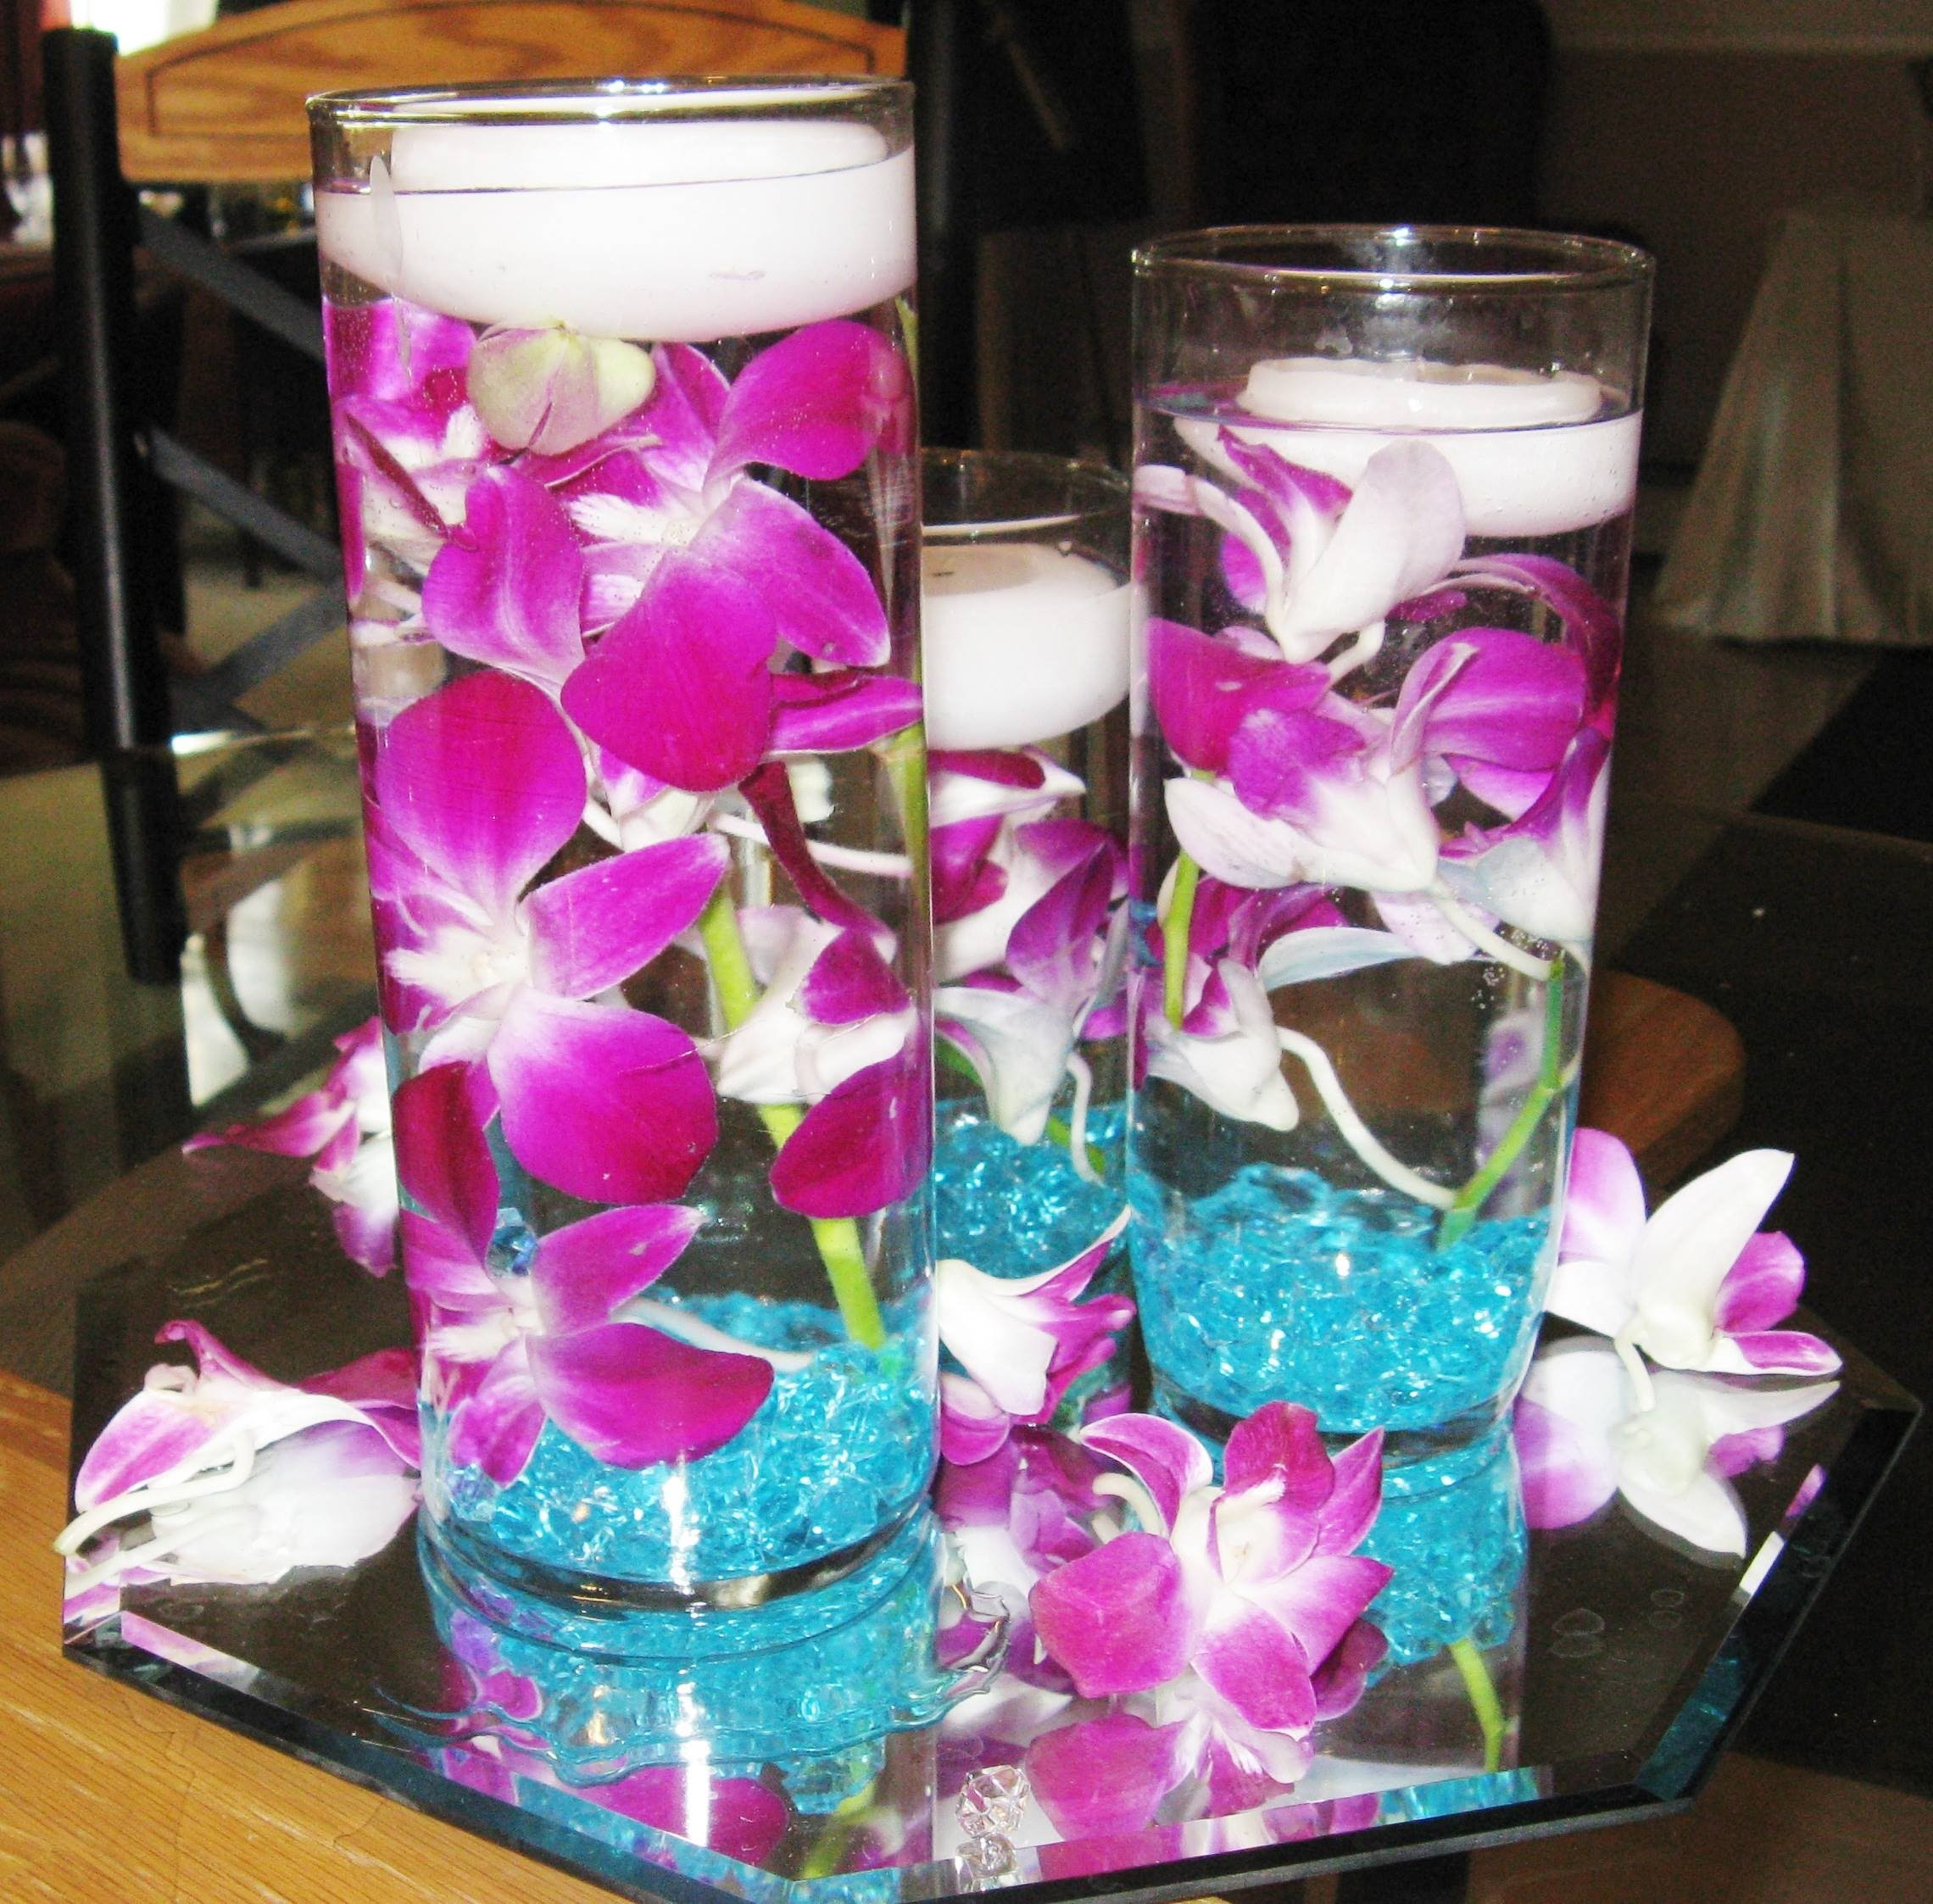 ac moore flower vases of diy jenngugs regarding my thoughts i knew i didnt want the traditional floral centerpieces right away so i started researching for a centerpiece idea i saw several pictures of